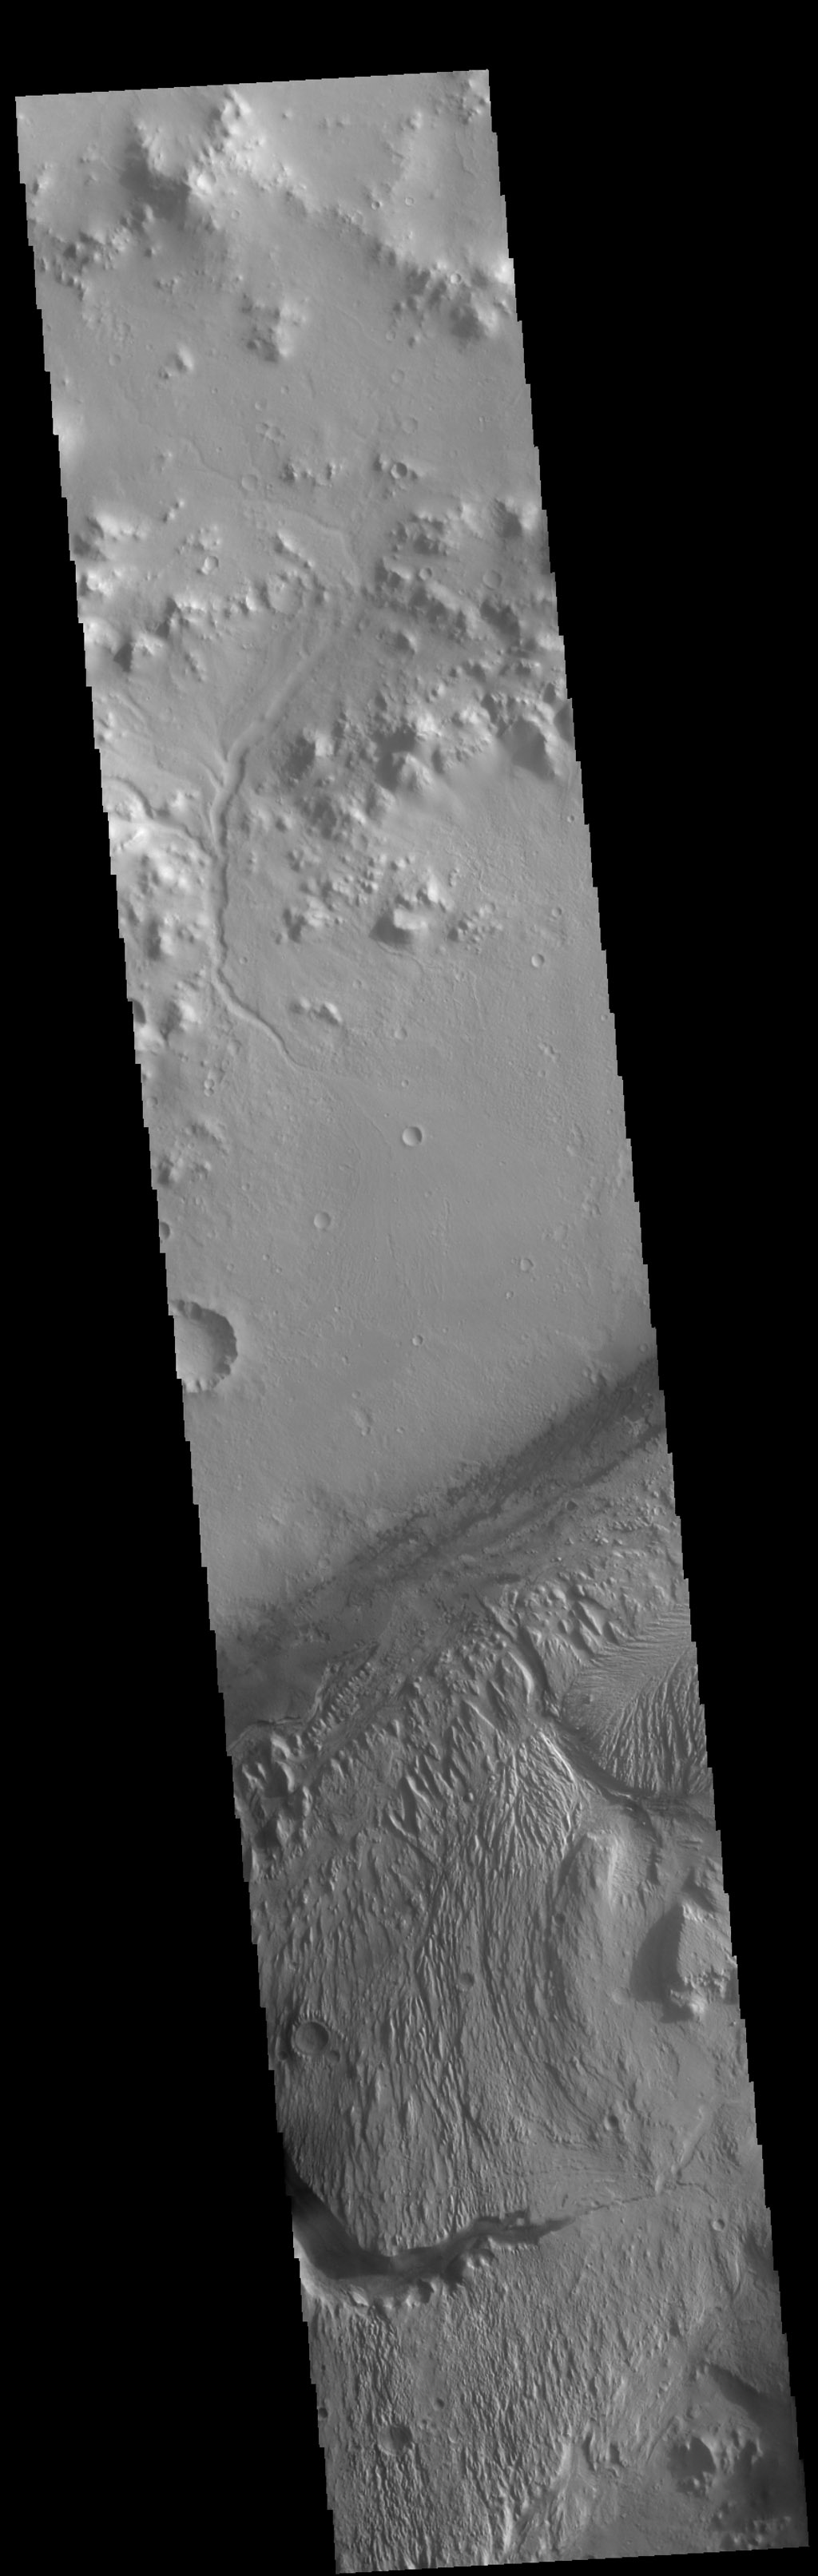 This image captured by NASA's 2001 Mars Odyssey spacecraft shows part of Gale Crater. Gale Crater is the home of the Curiosity Rover.